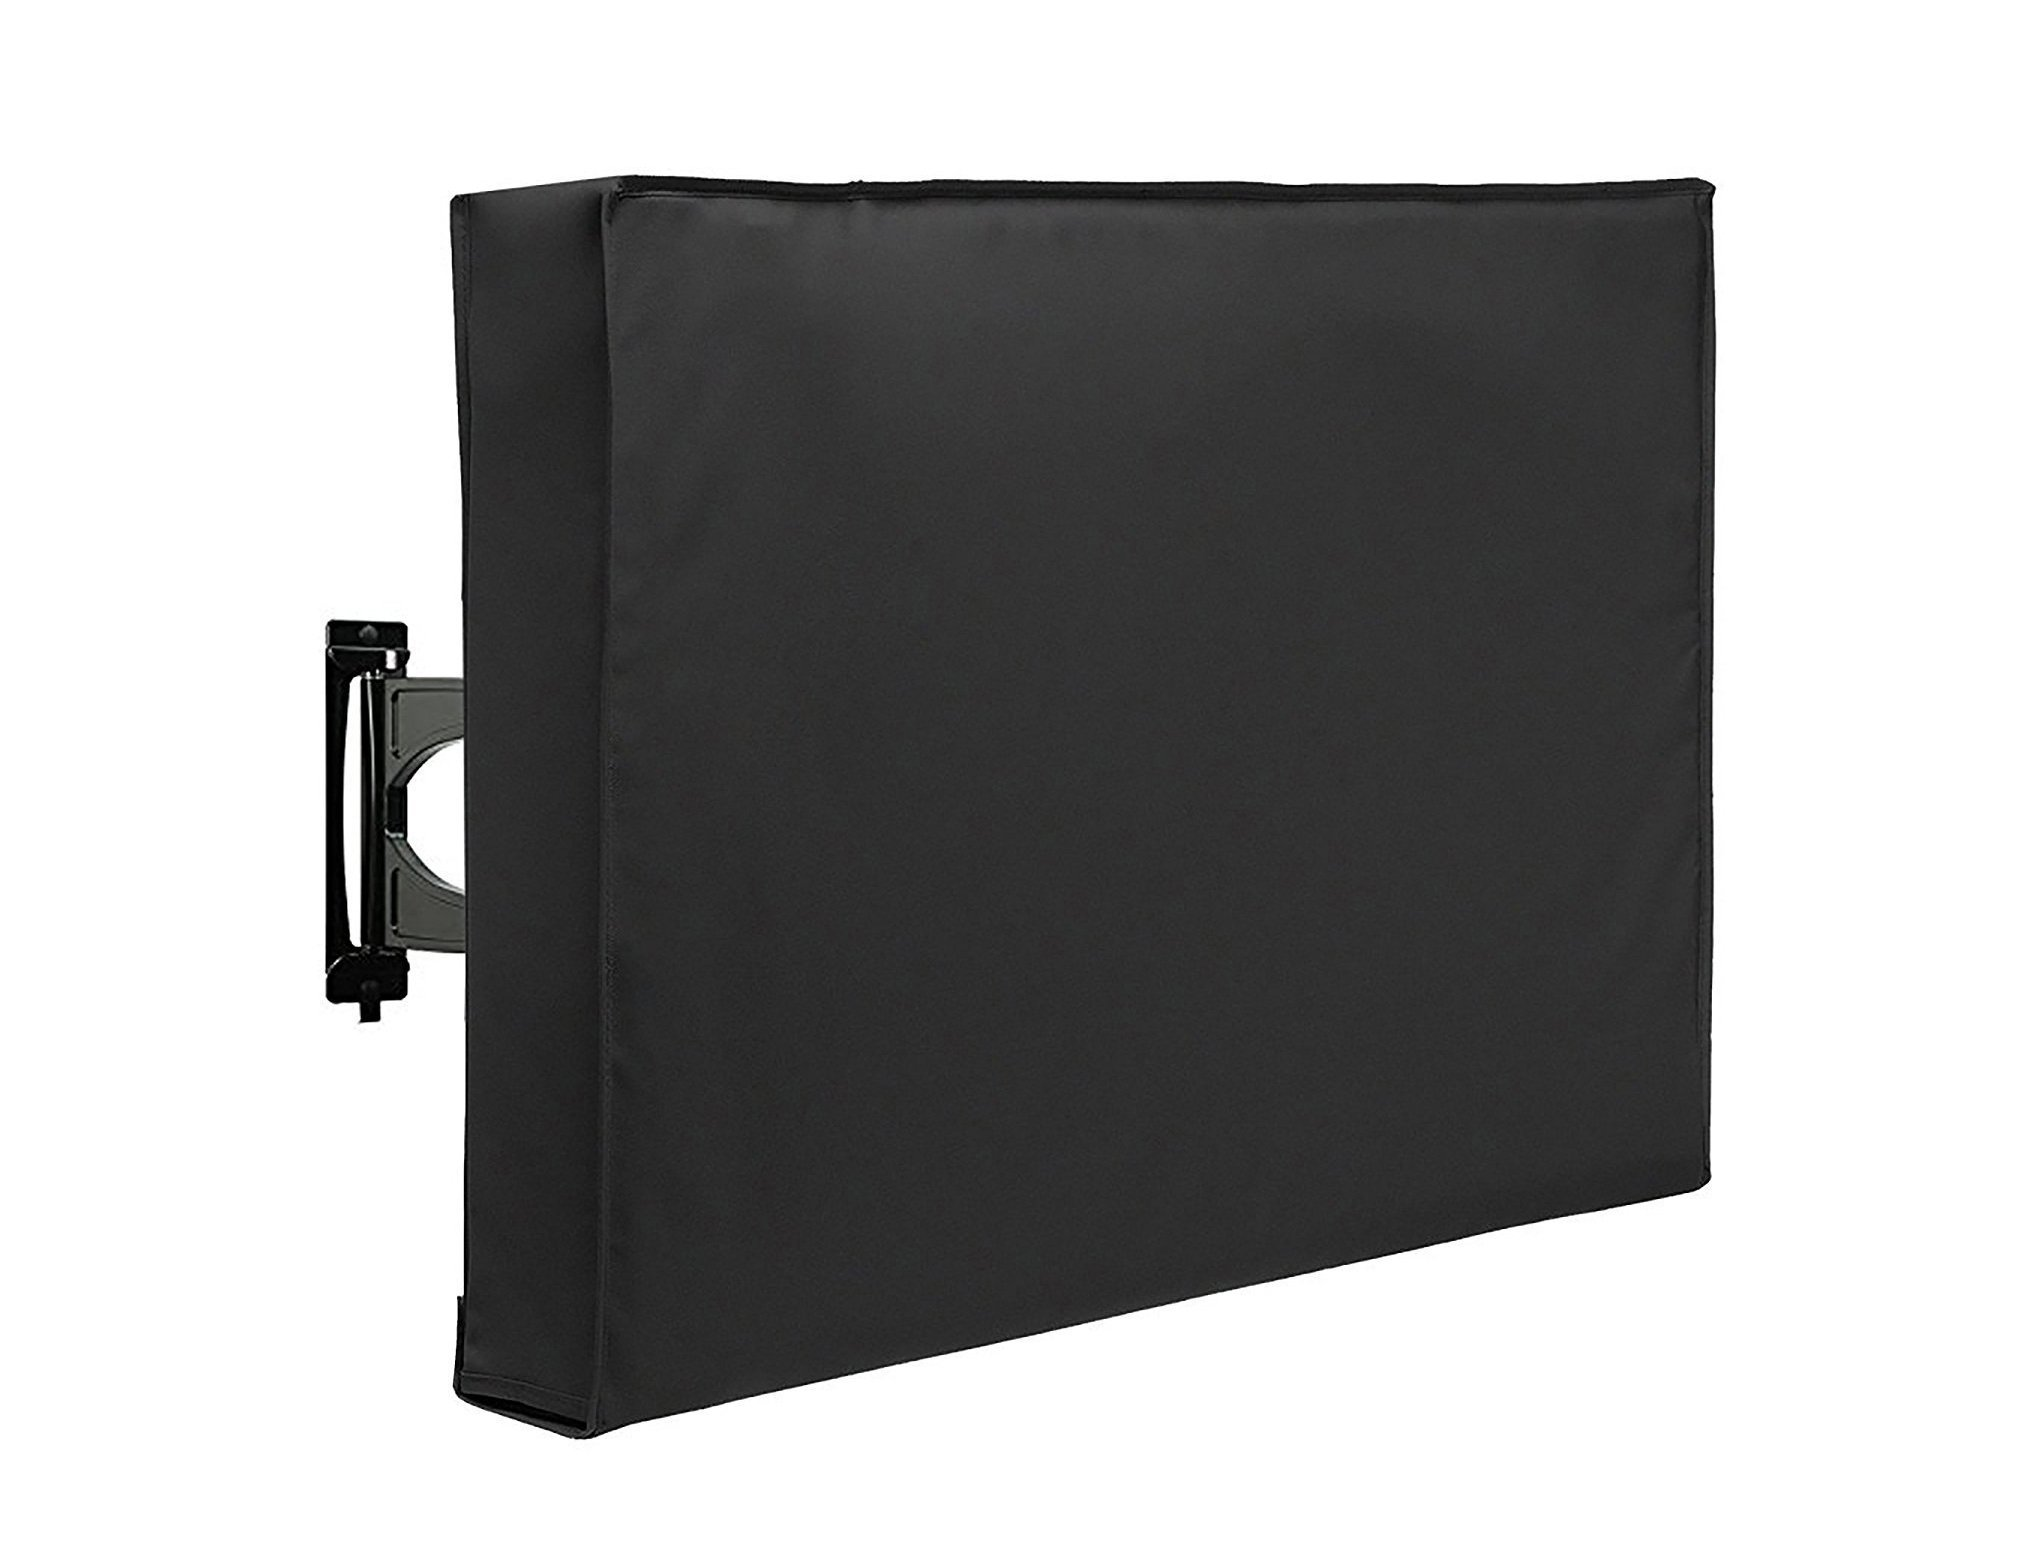 Cookingstar Outdoor TV Cover With Bottom Covered 600D Heavy Duty Weatherproof and Dust Oxford Fabric (30-32inches)